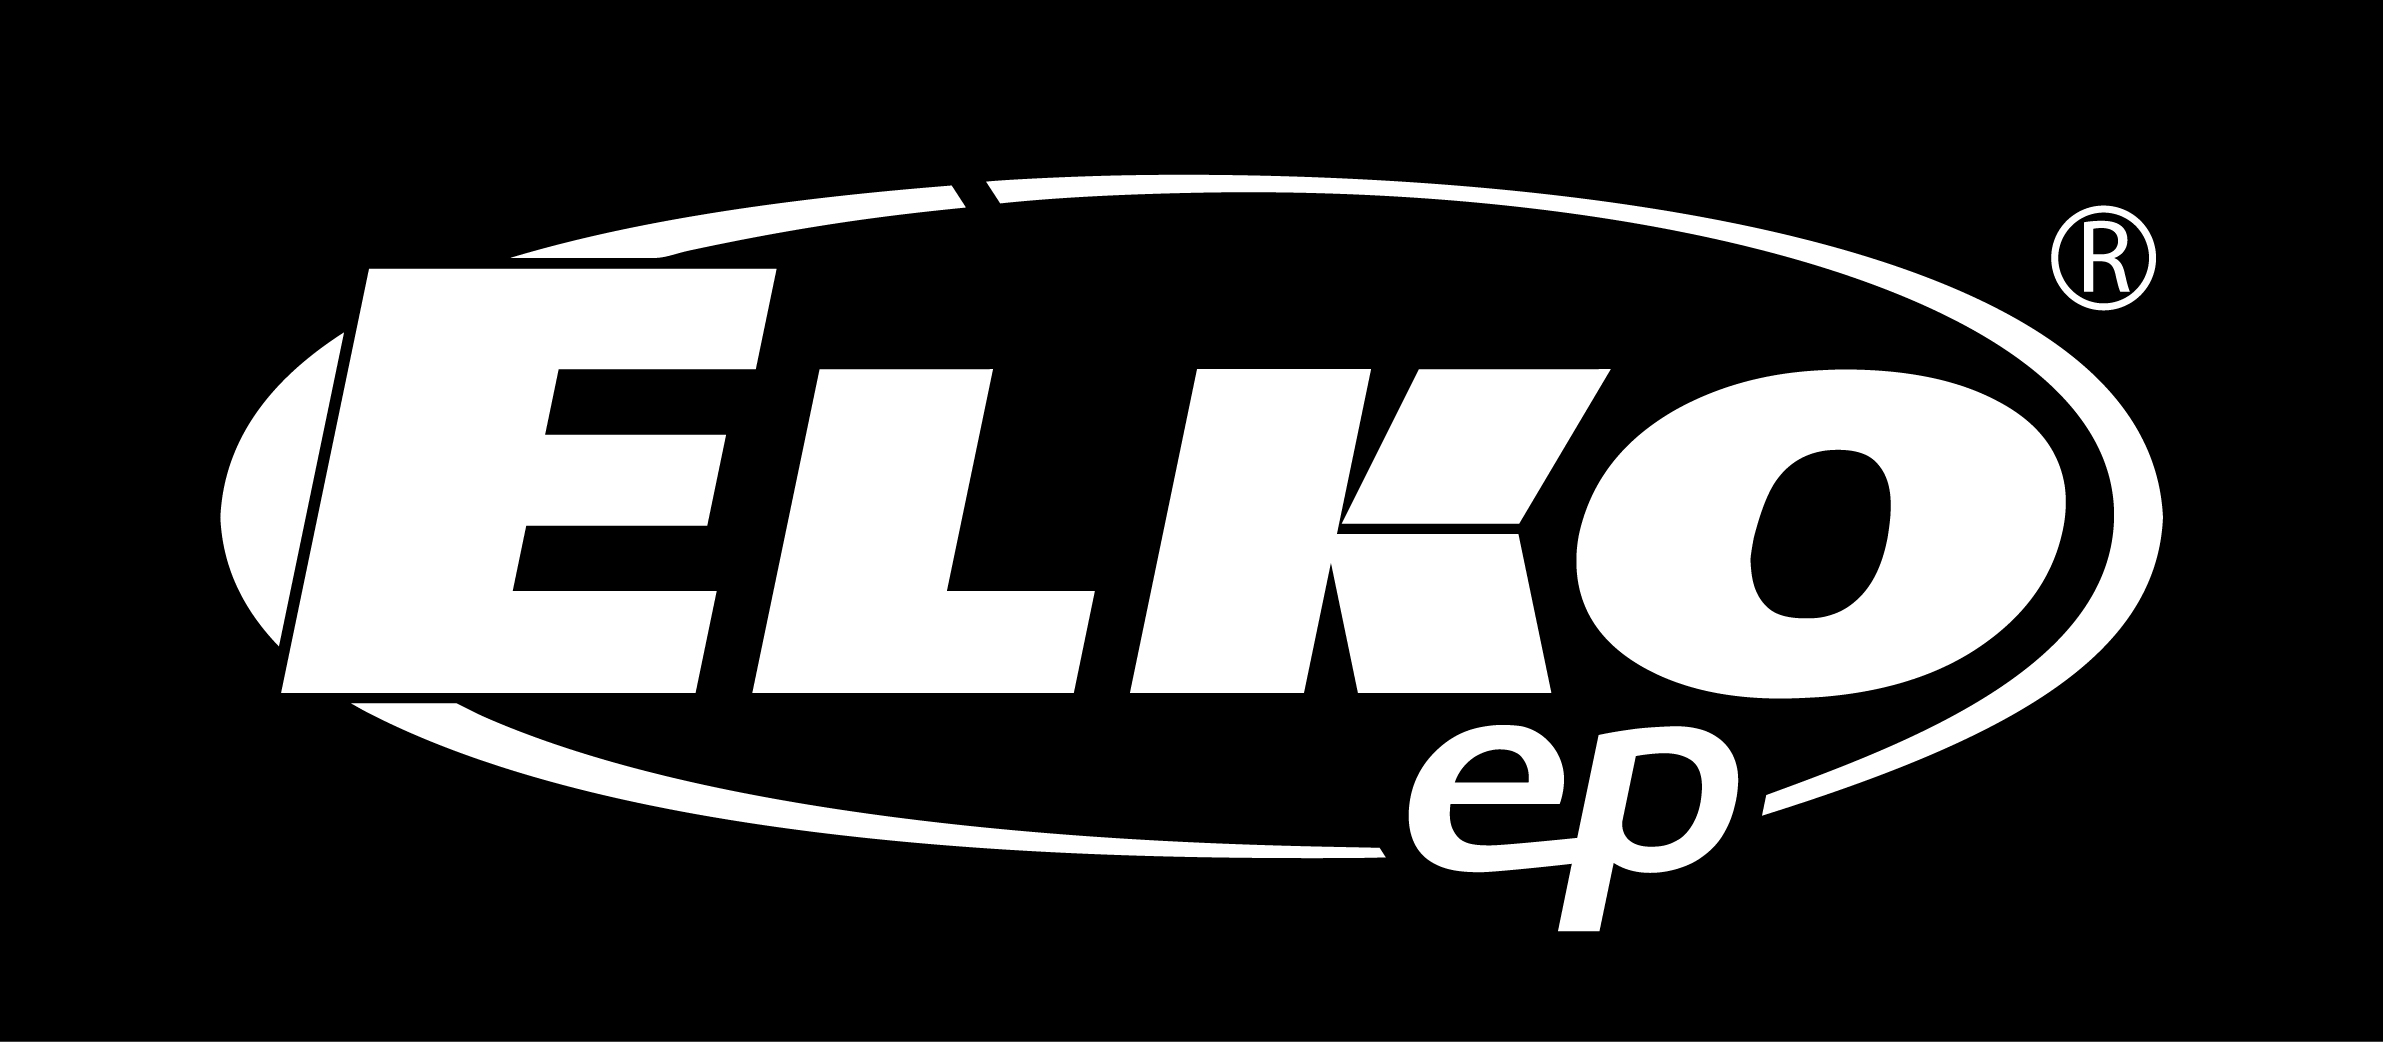 Marketing support • ElkoEP.